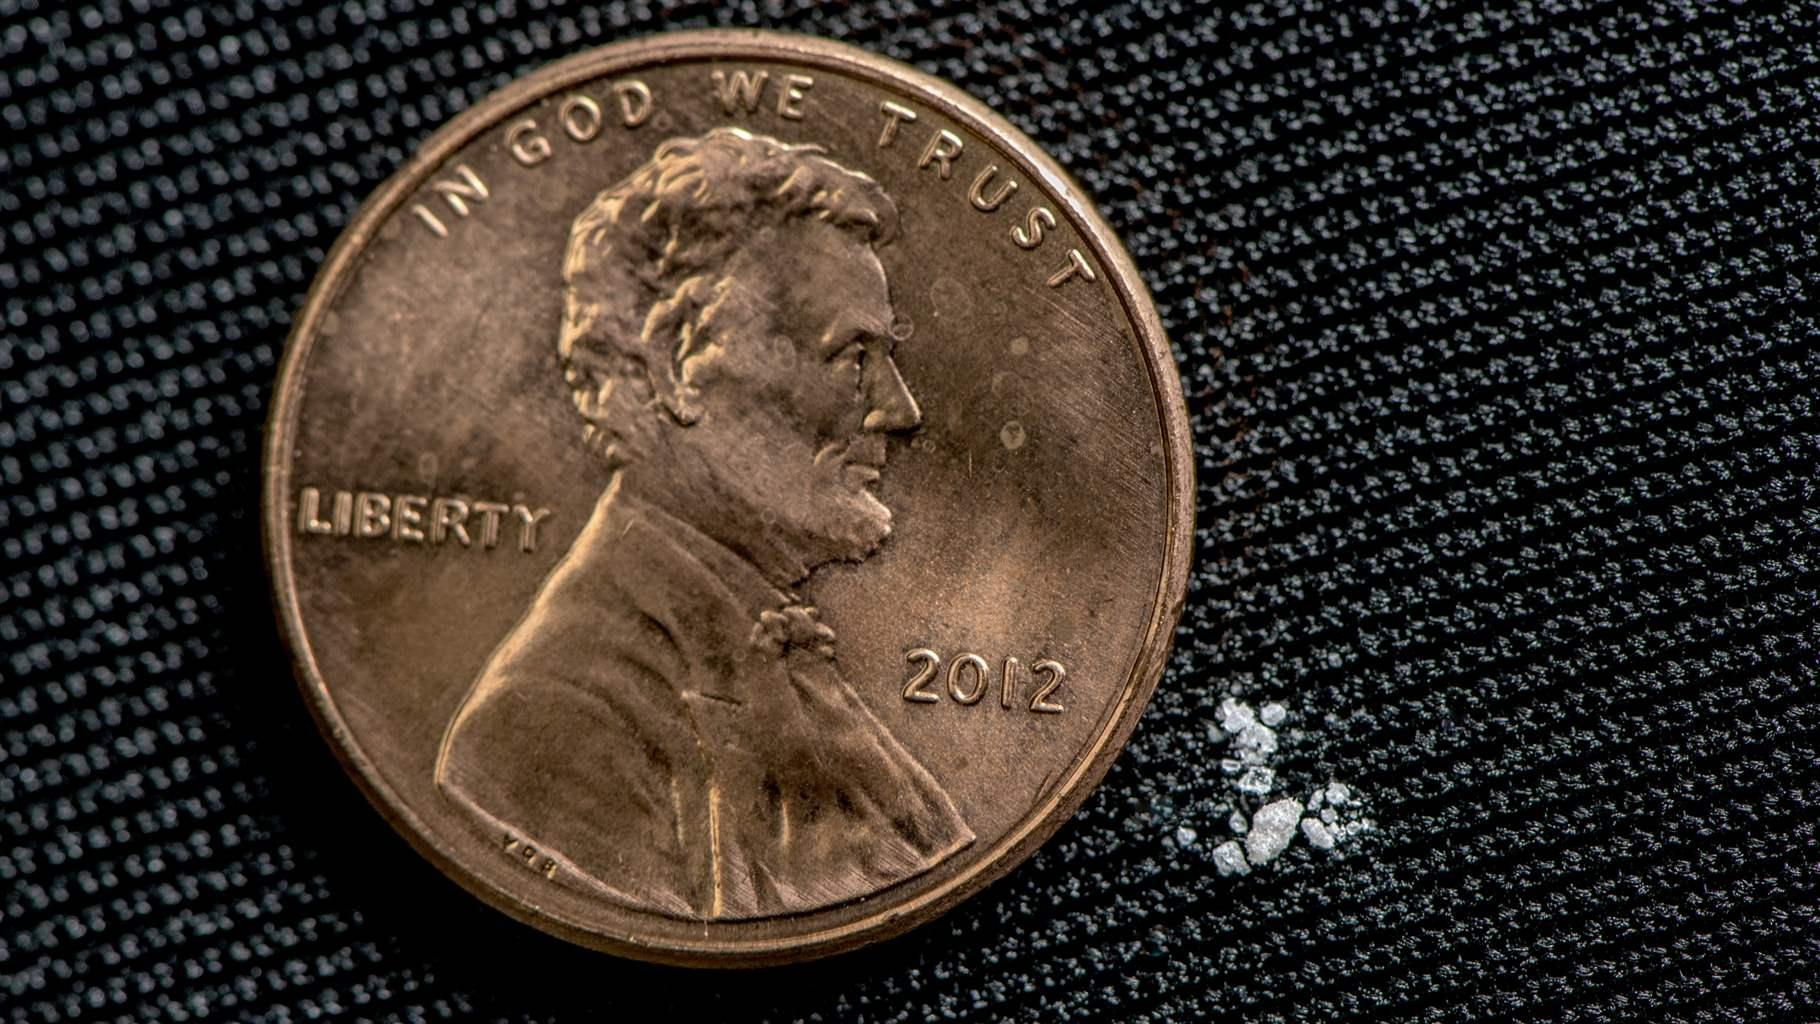 Picture of a U.S. penny next to milligrams of fentanyl, which is a fatal dose for most drug users. DEA